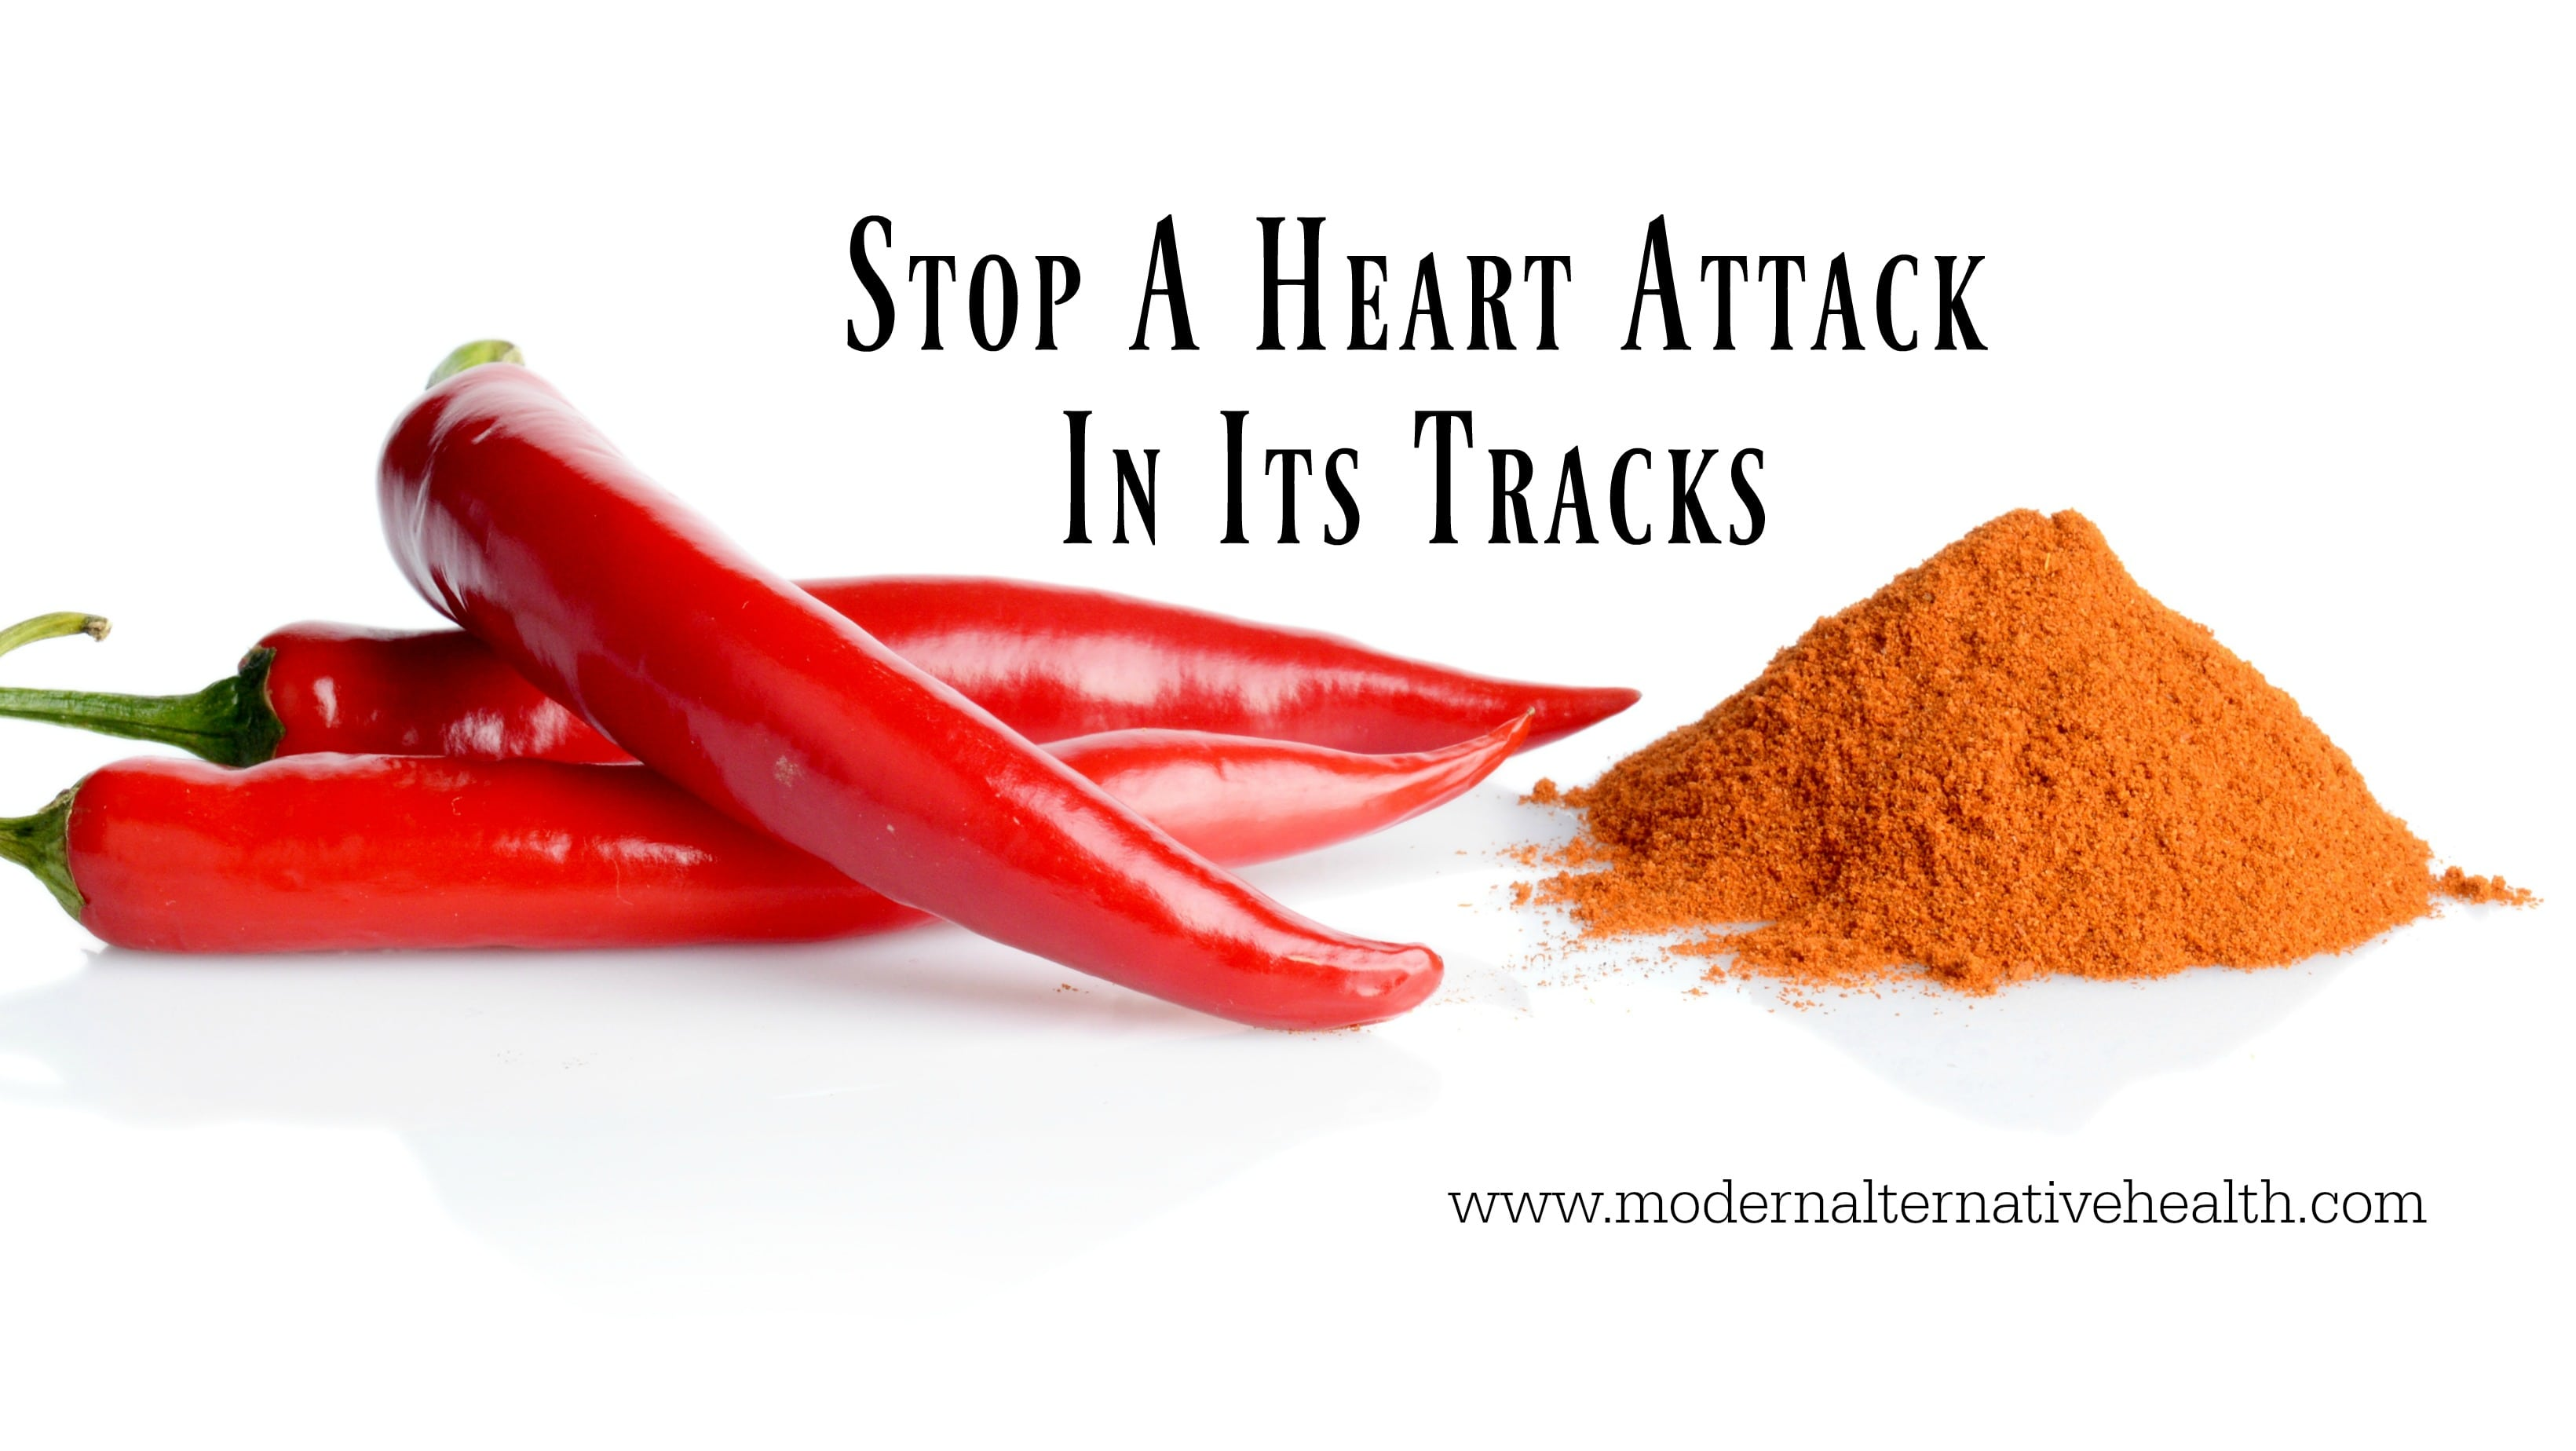 Stop A Heart Attack In Its Tracks